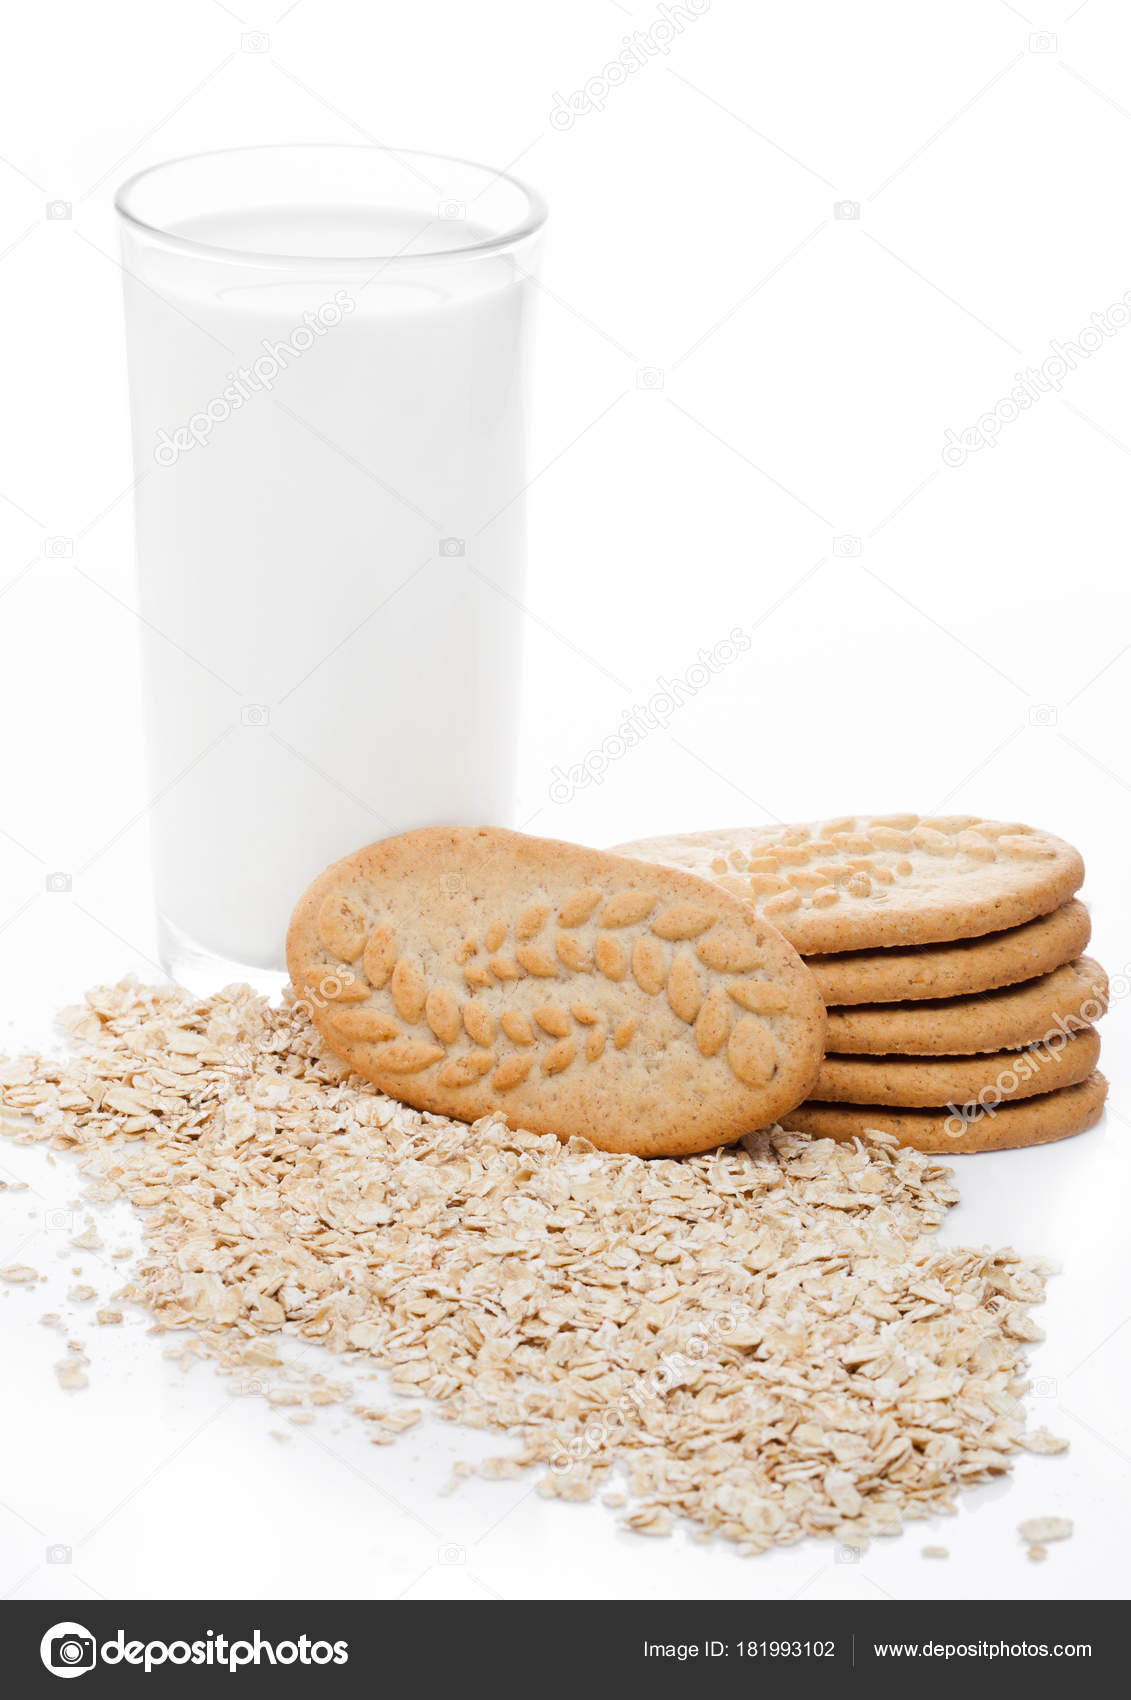 Grain Bio Healthy Bio Breakfast Grain Biscuits With Milk Stock Photo